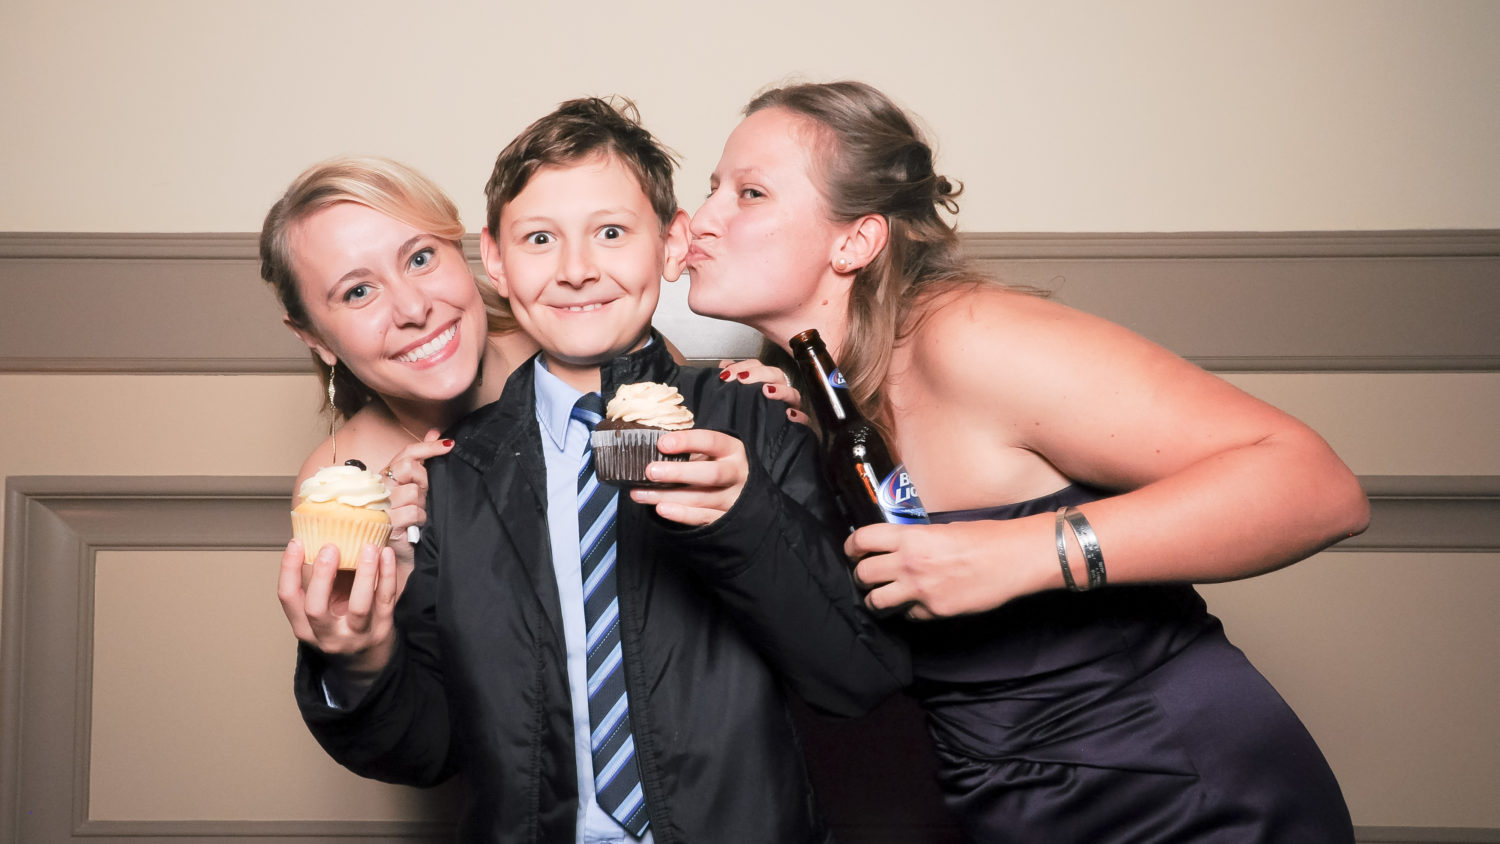 funny kid in wedding photo booth